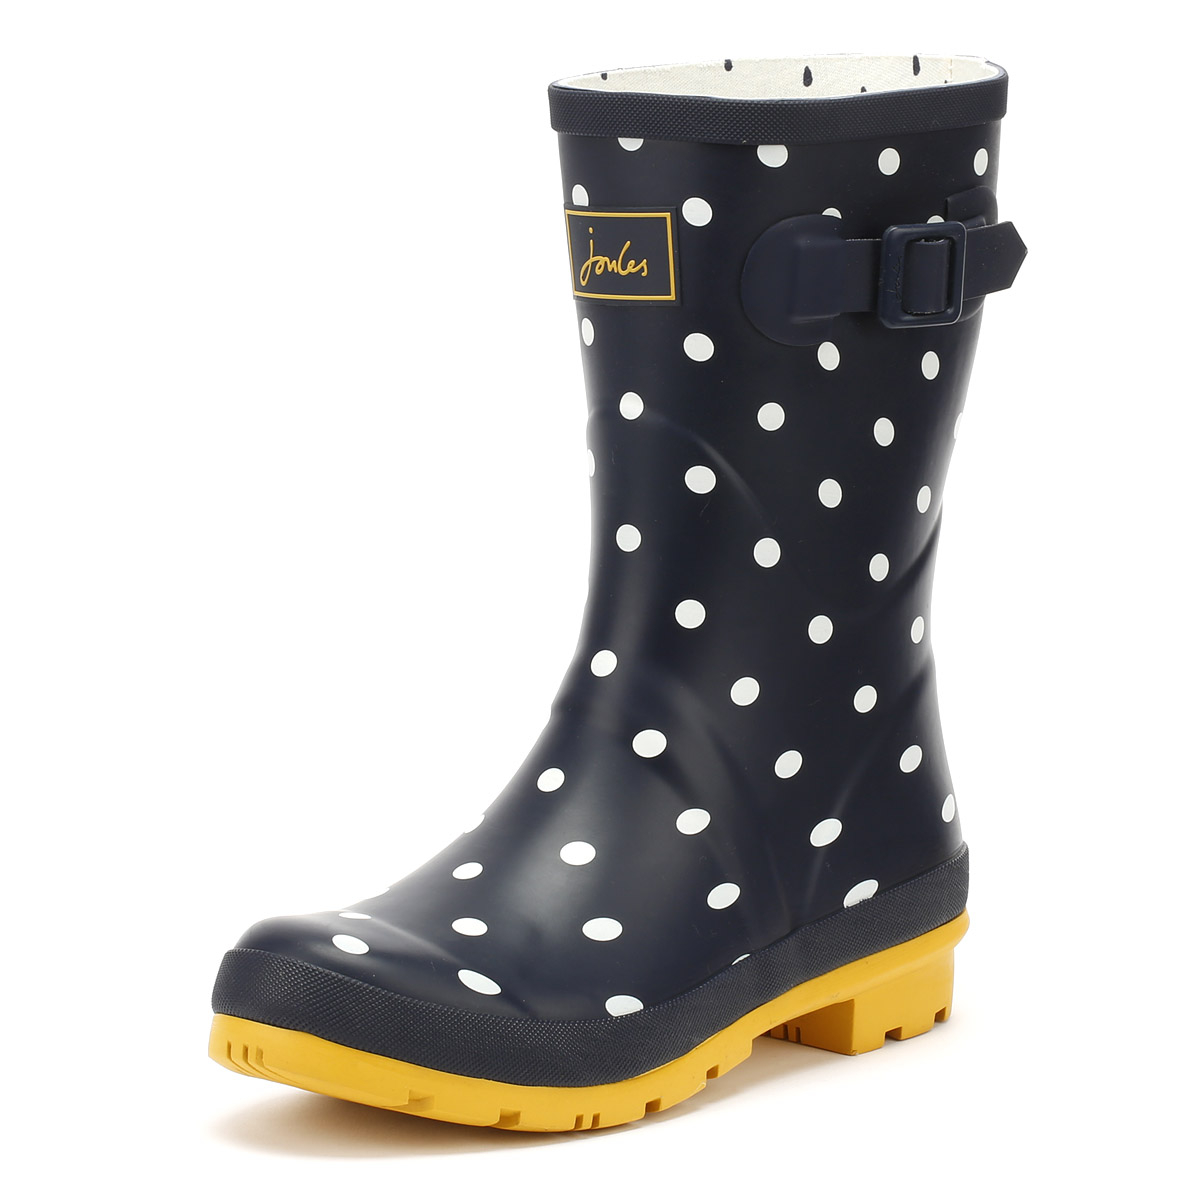 Joules Womens Wellington Rubber Boots French Navy Spot Molly Wellies